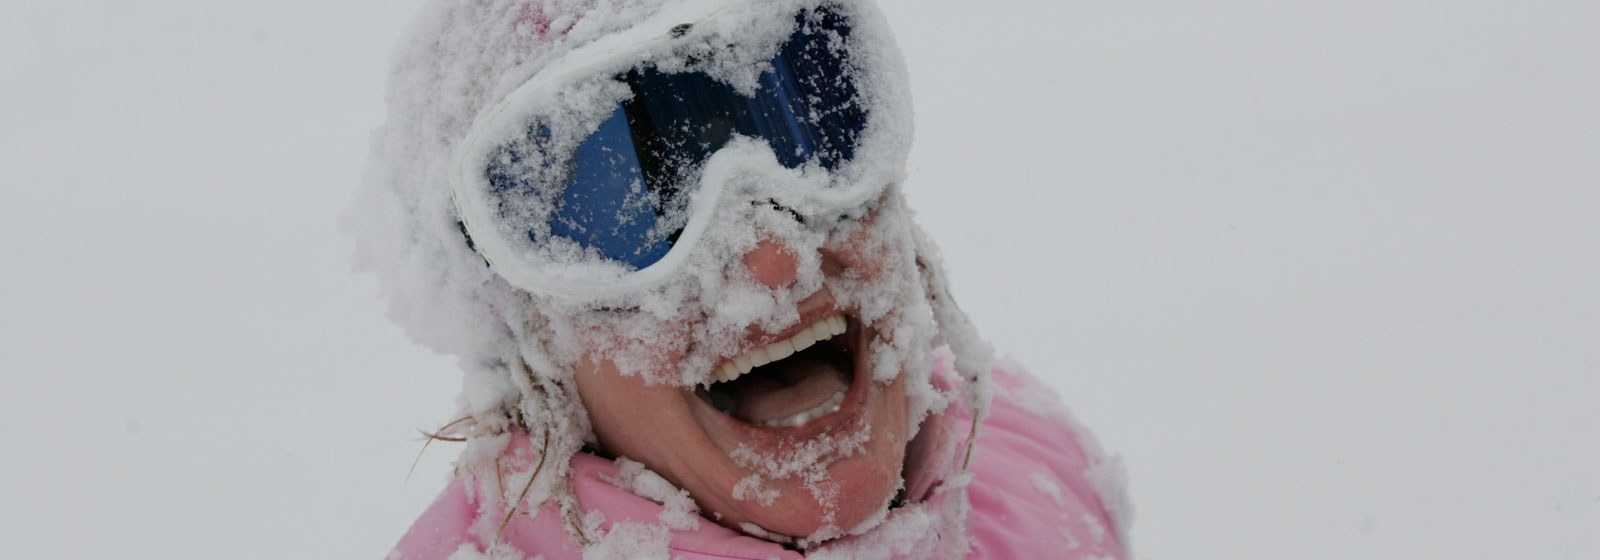 Woman laughing with snow on her face